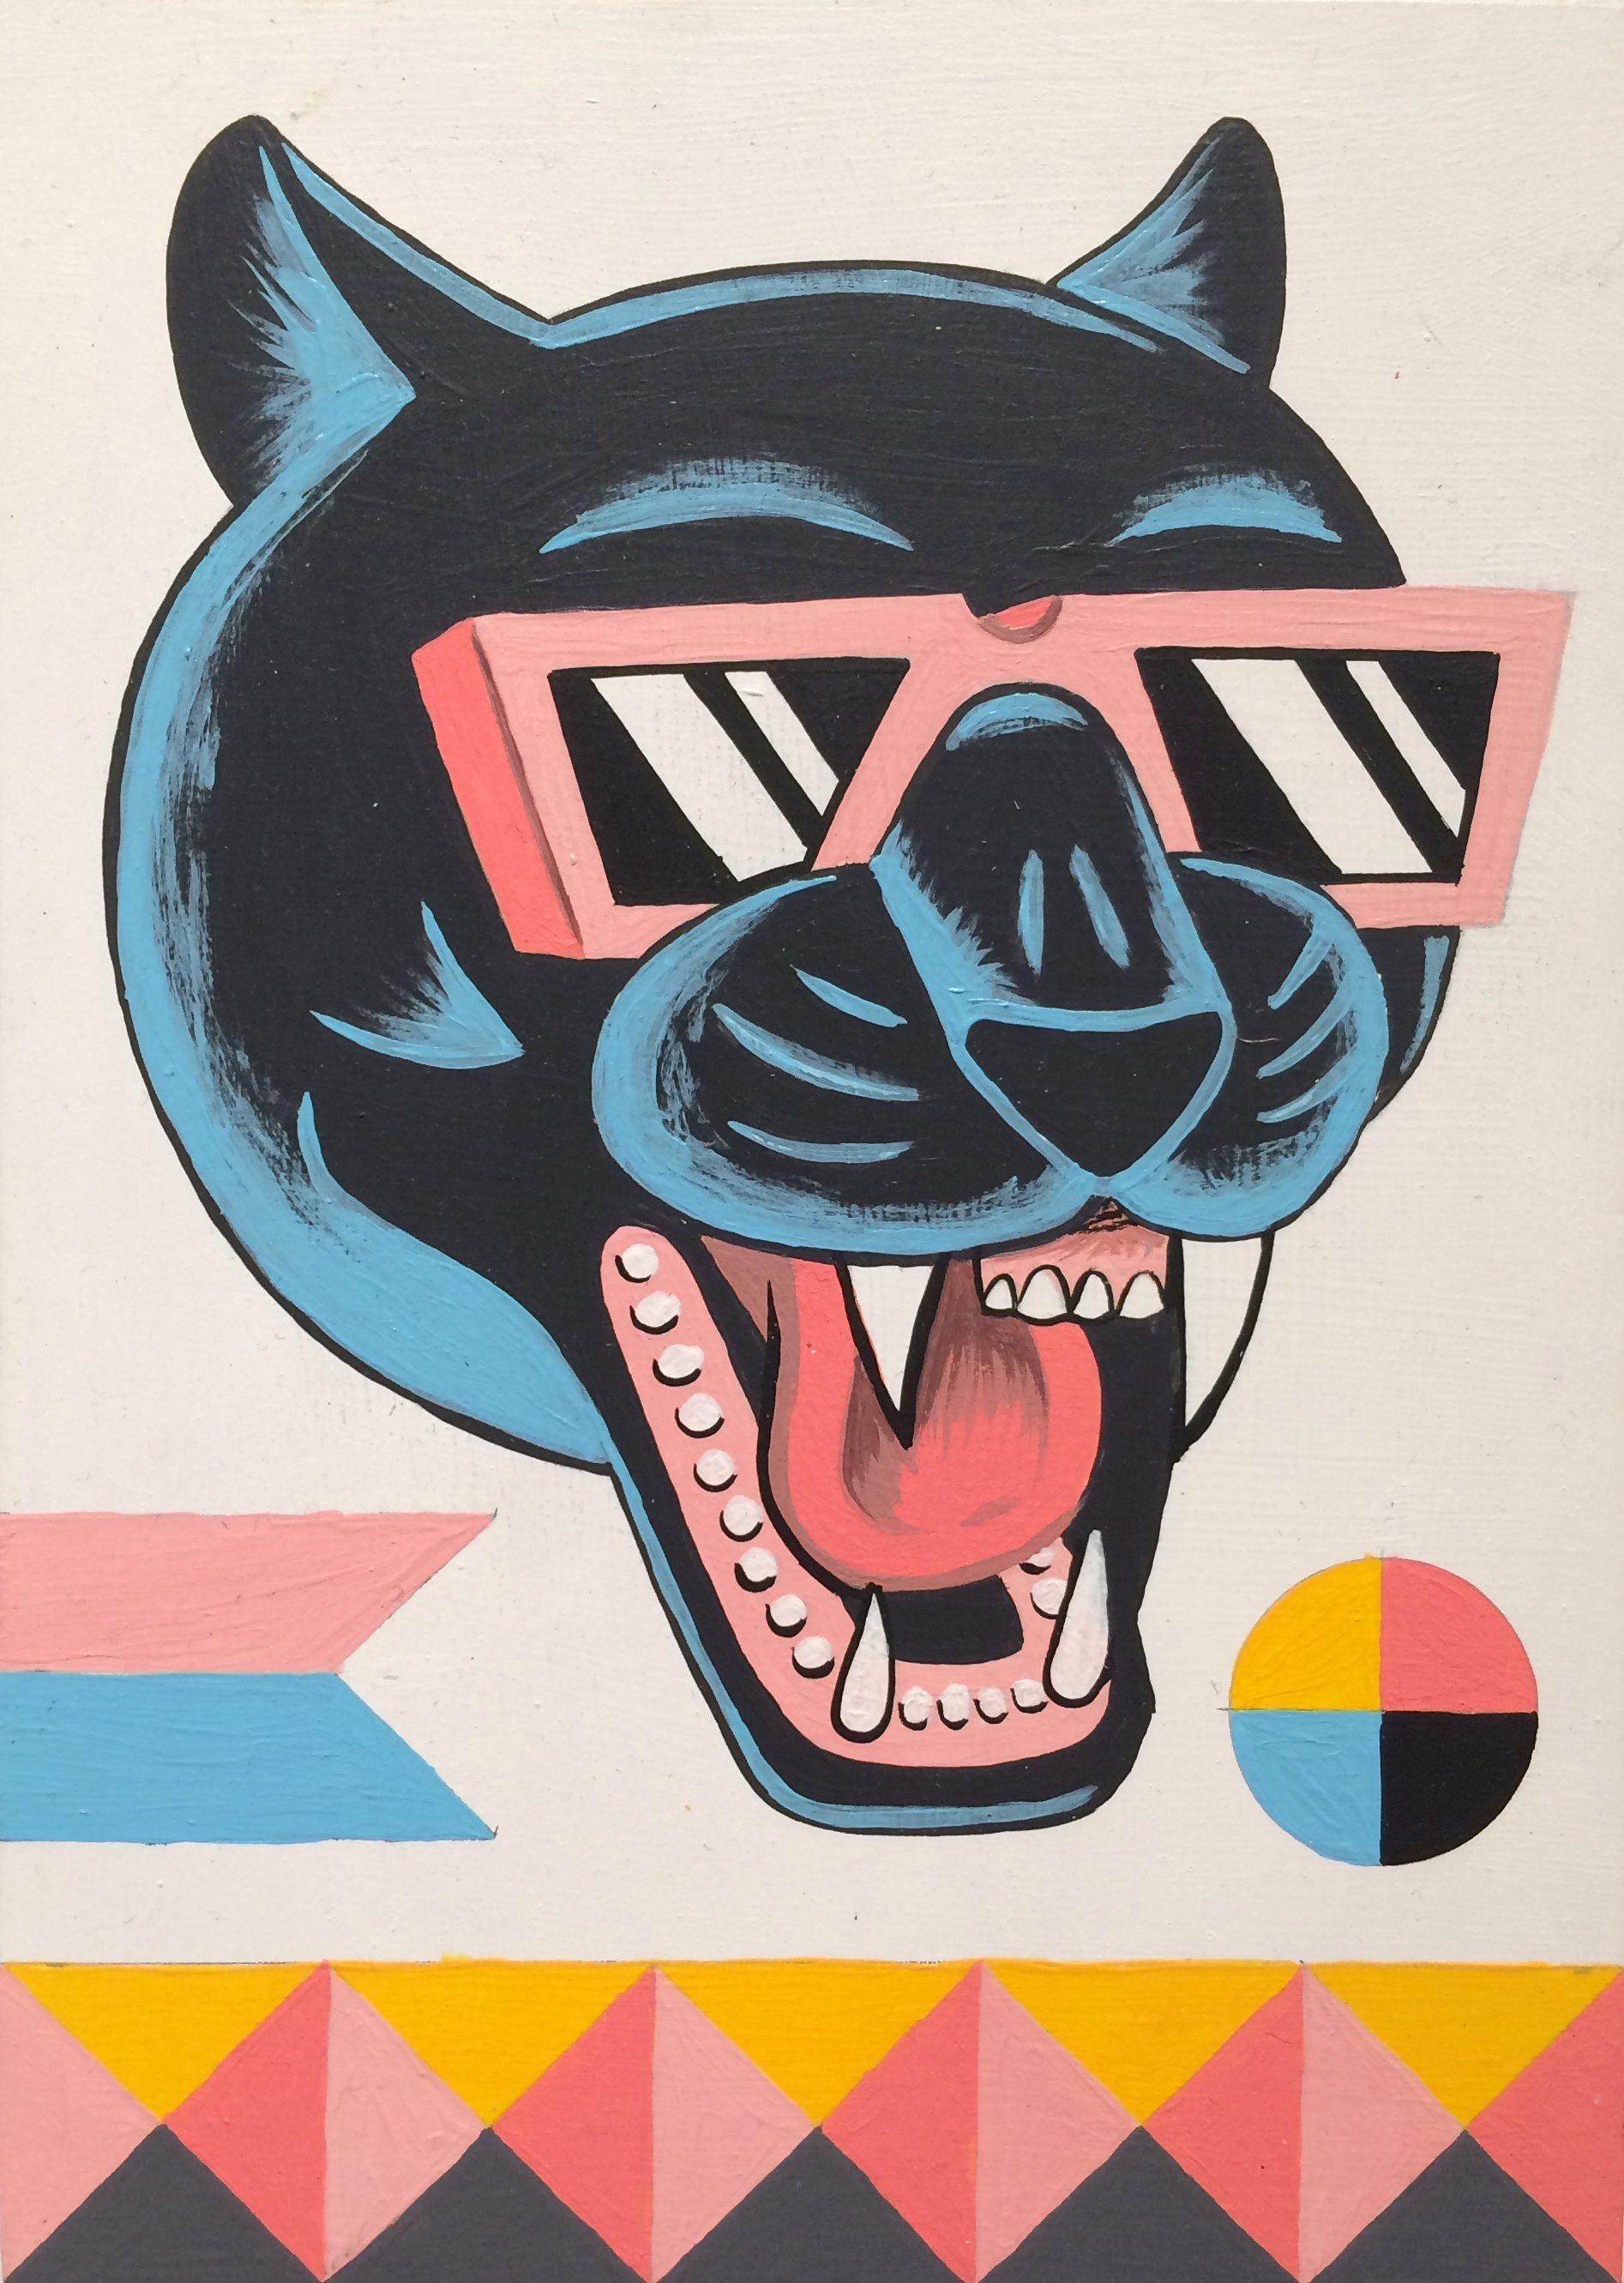 Luke Pelletier / Panther Party / 2014 / Acrylic on wood panel / 7 x 5 inches